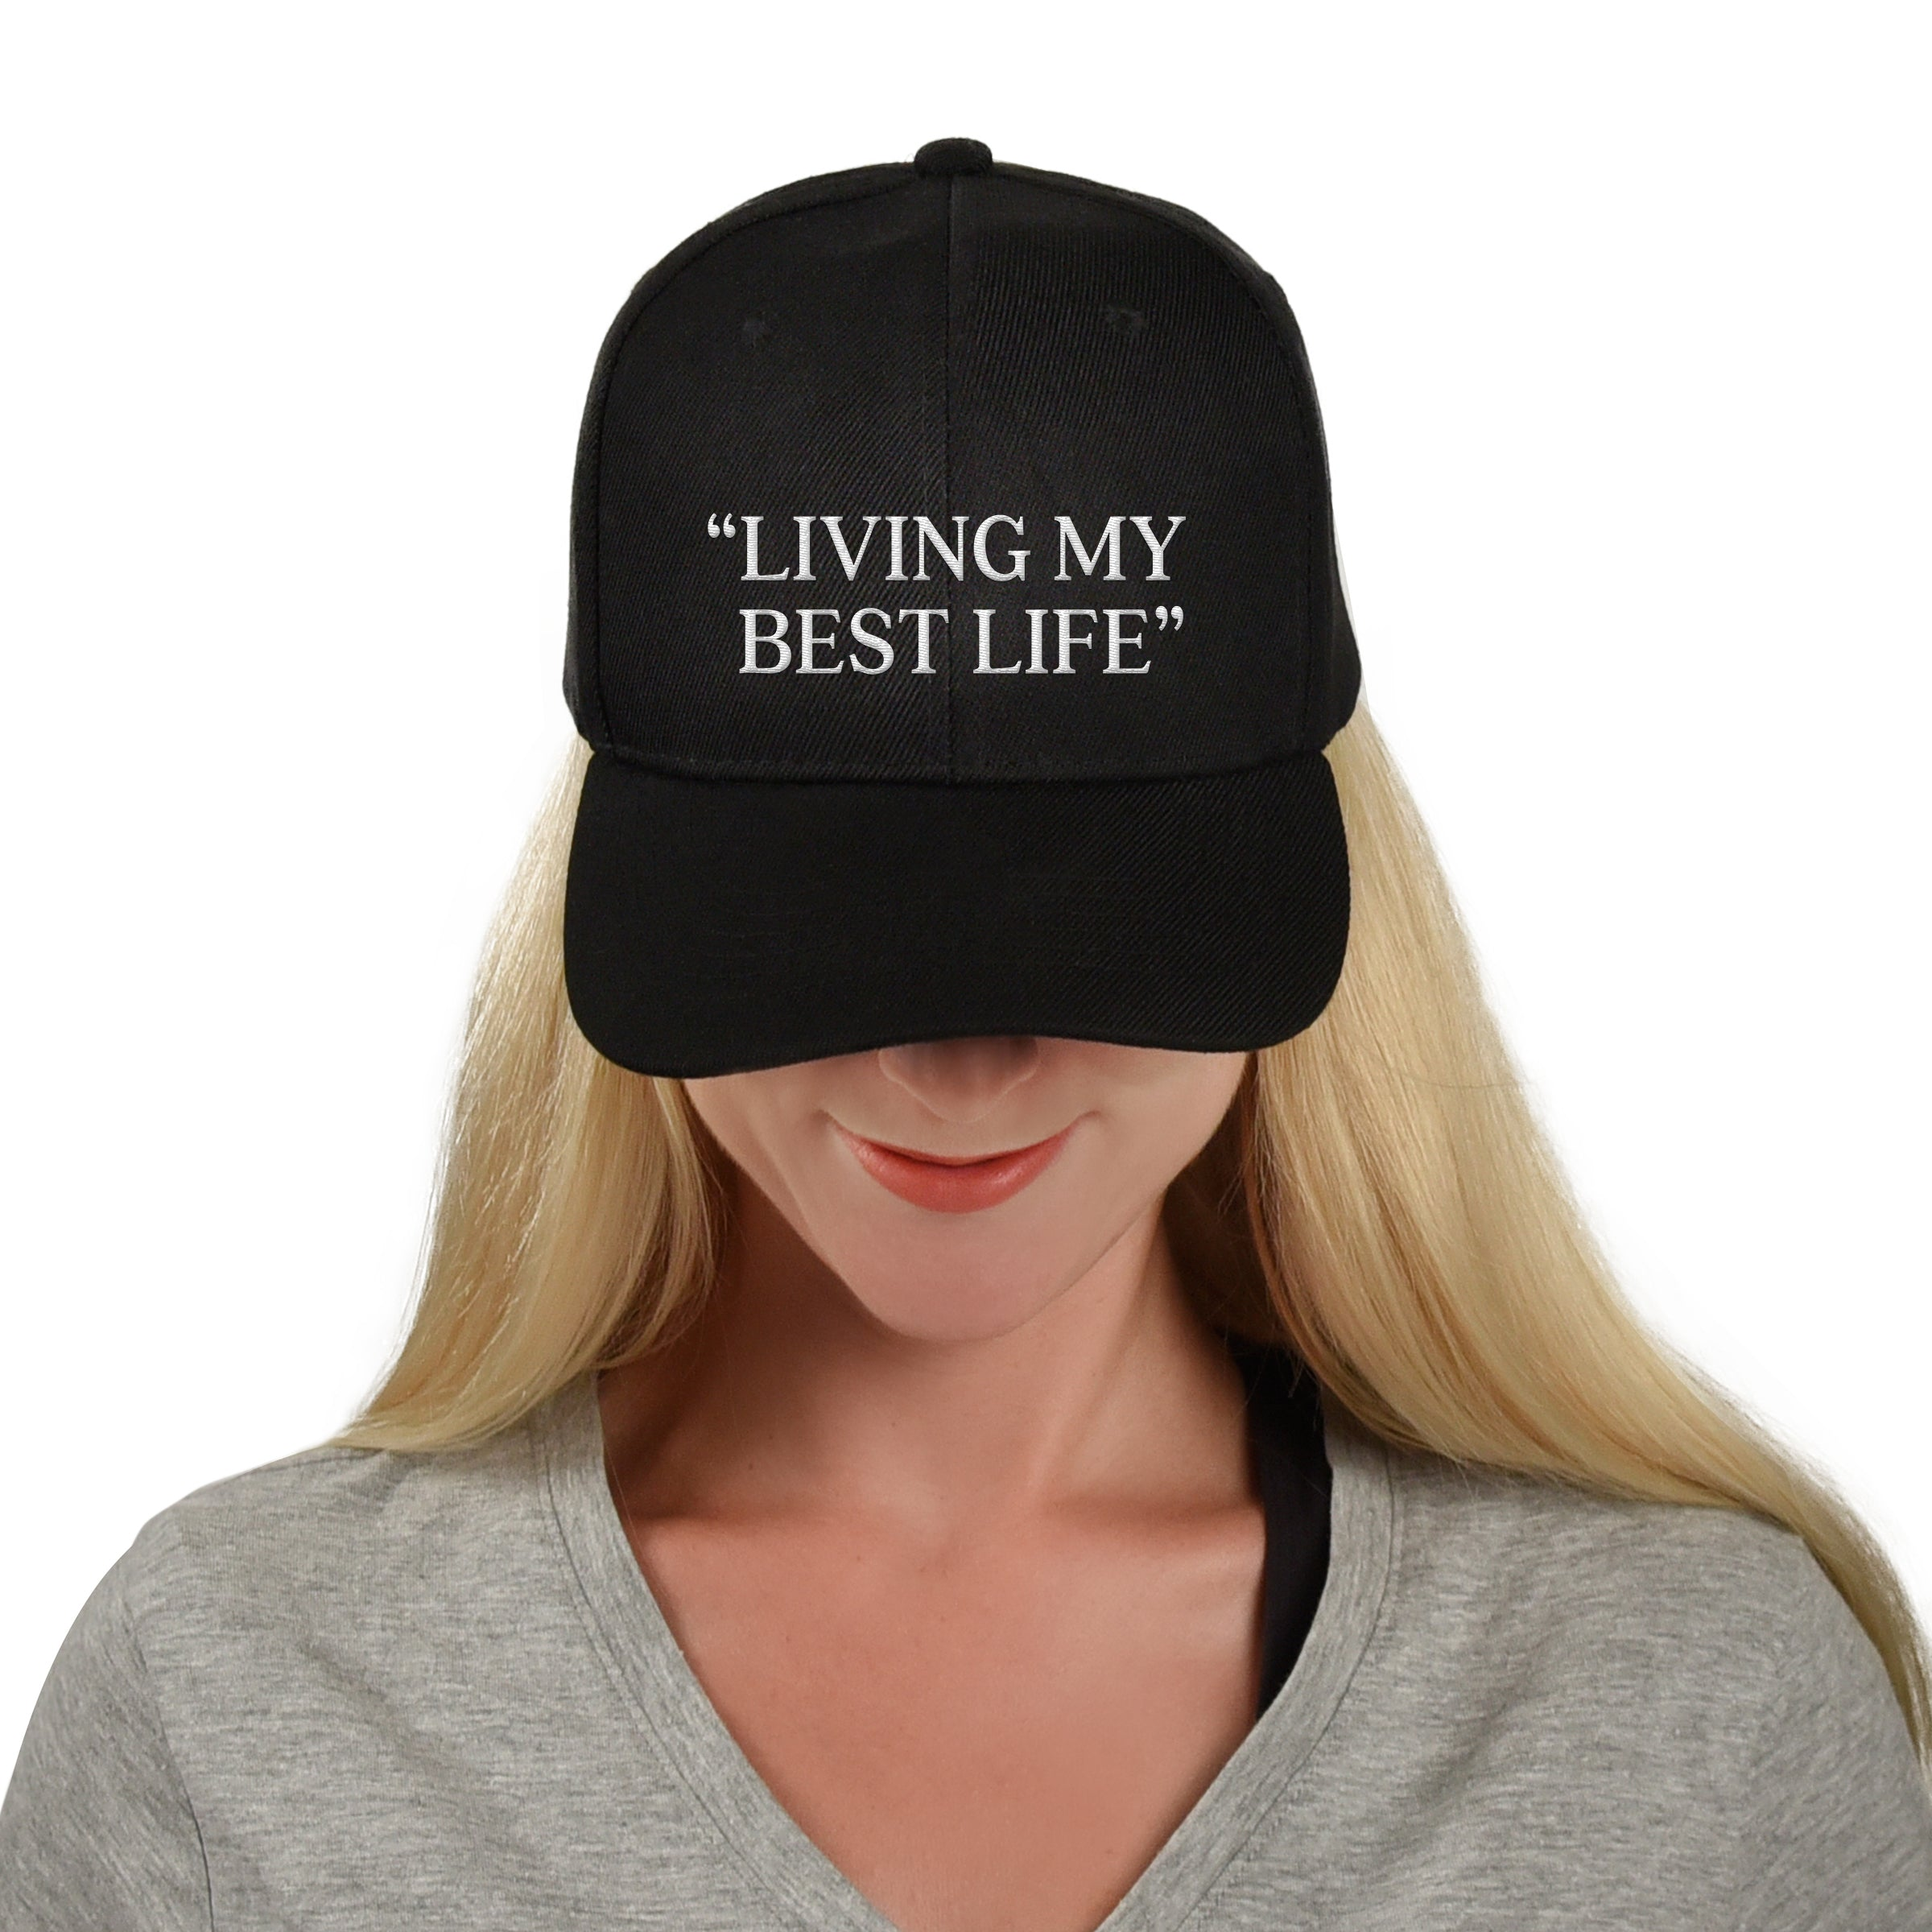 Living My Best Life Hat Structured Twill Cap Cute Funny Hat Inspirational Positivity Hat Baseball Cap